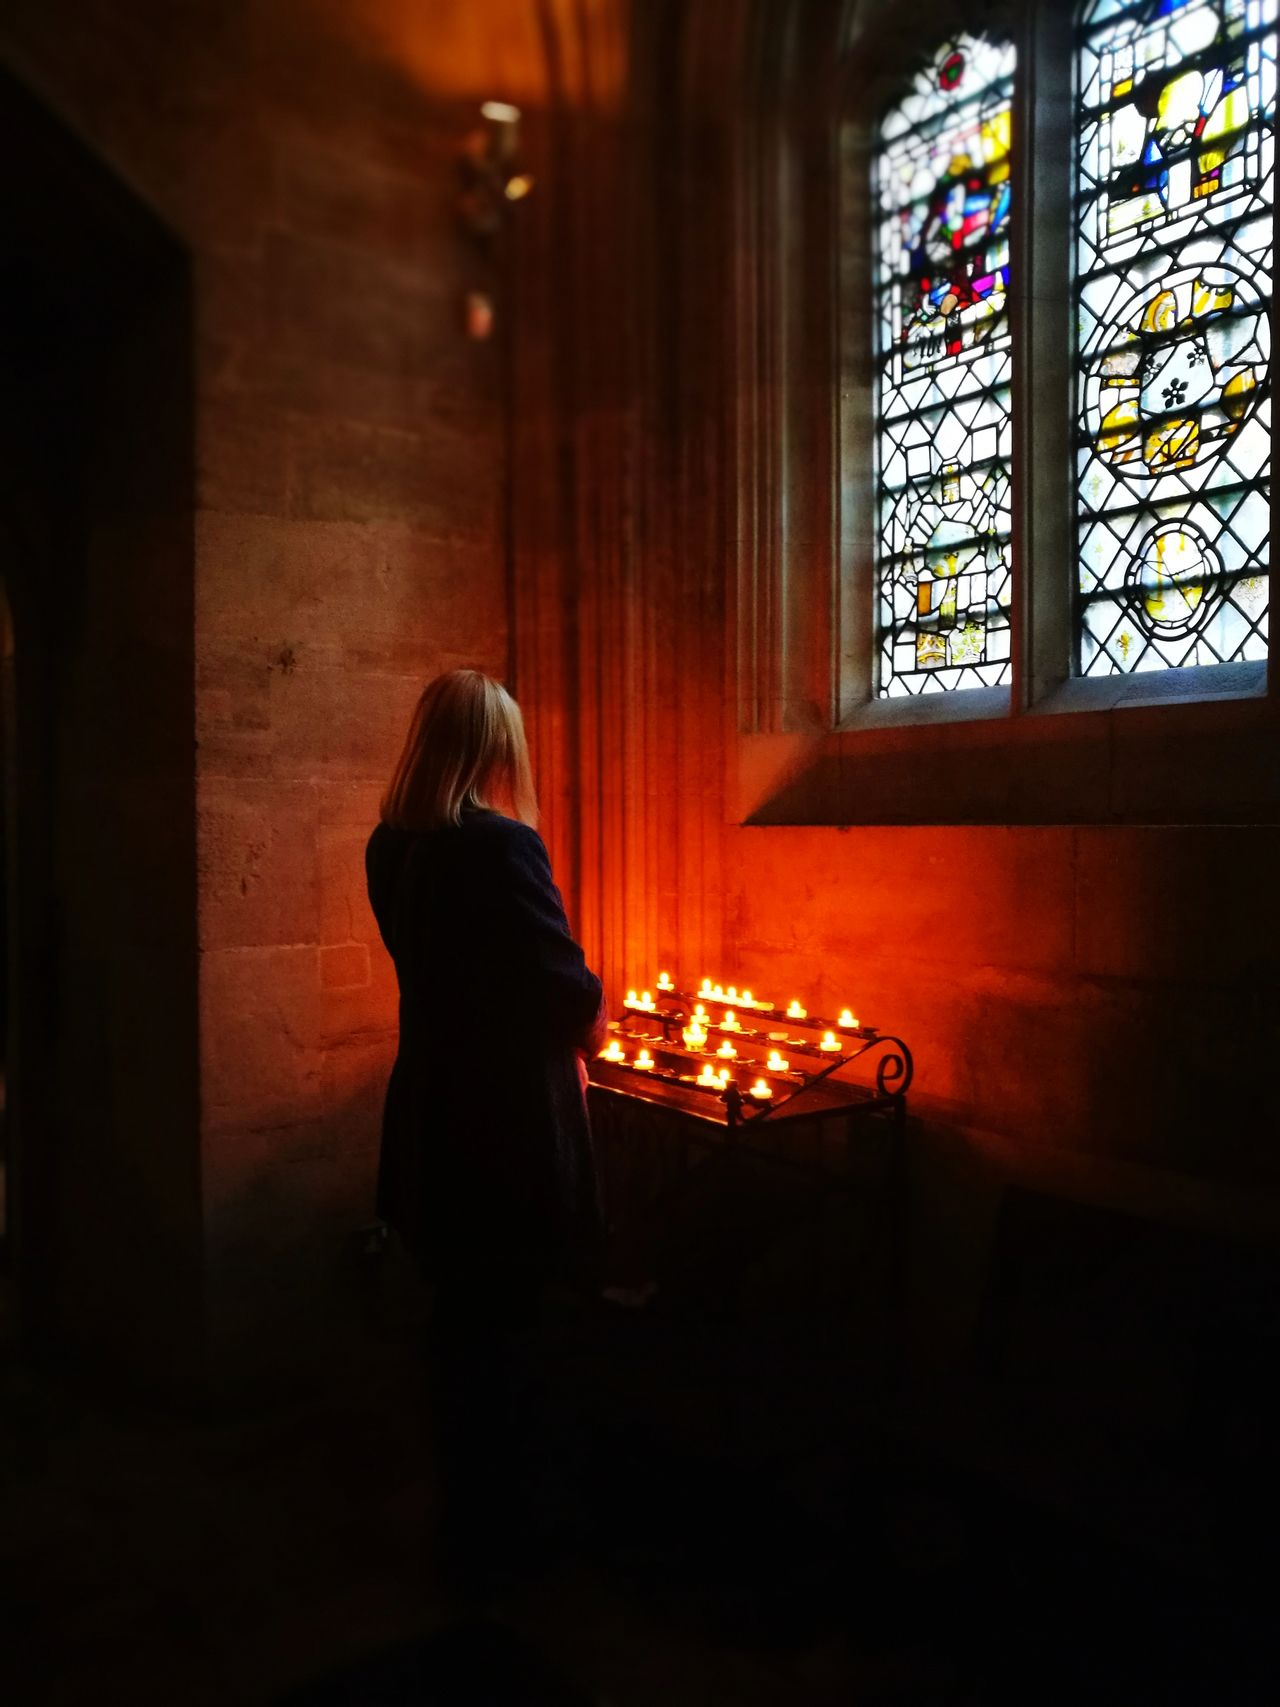 Woman sitting by illuminated candles and window in church